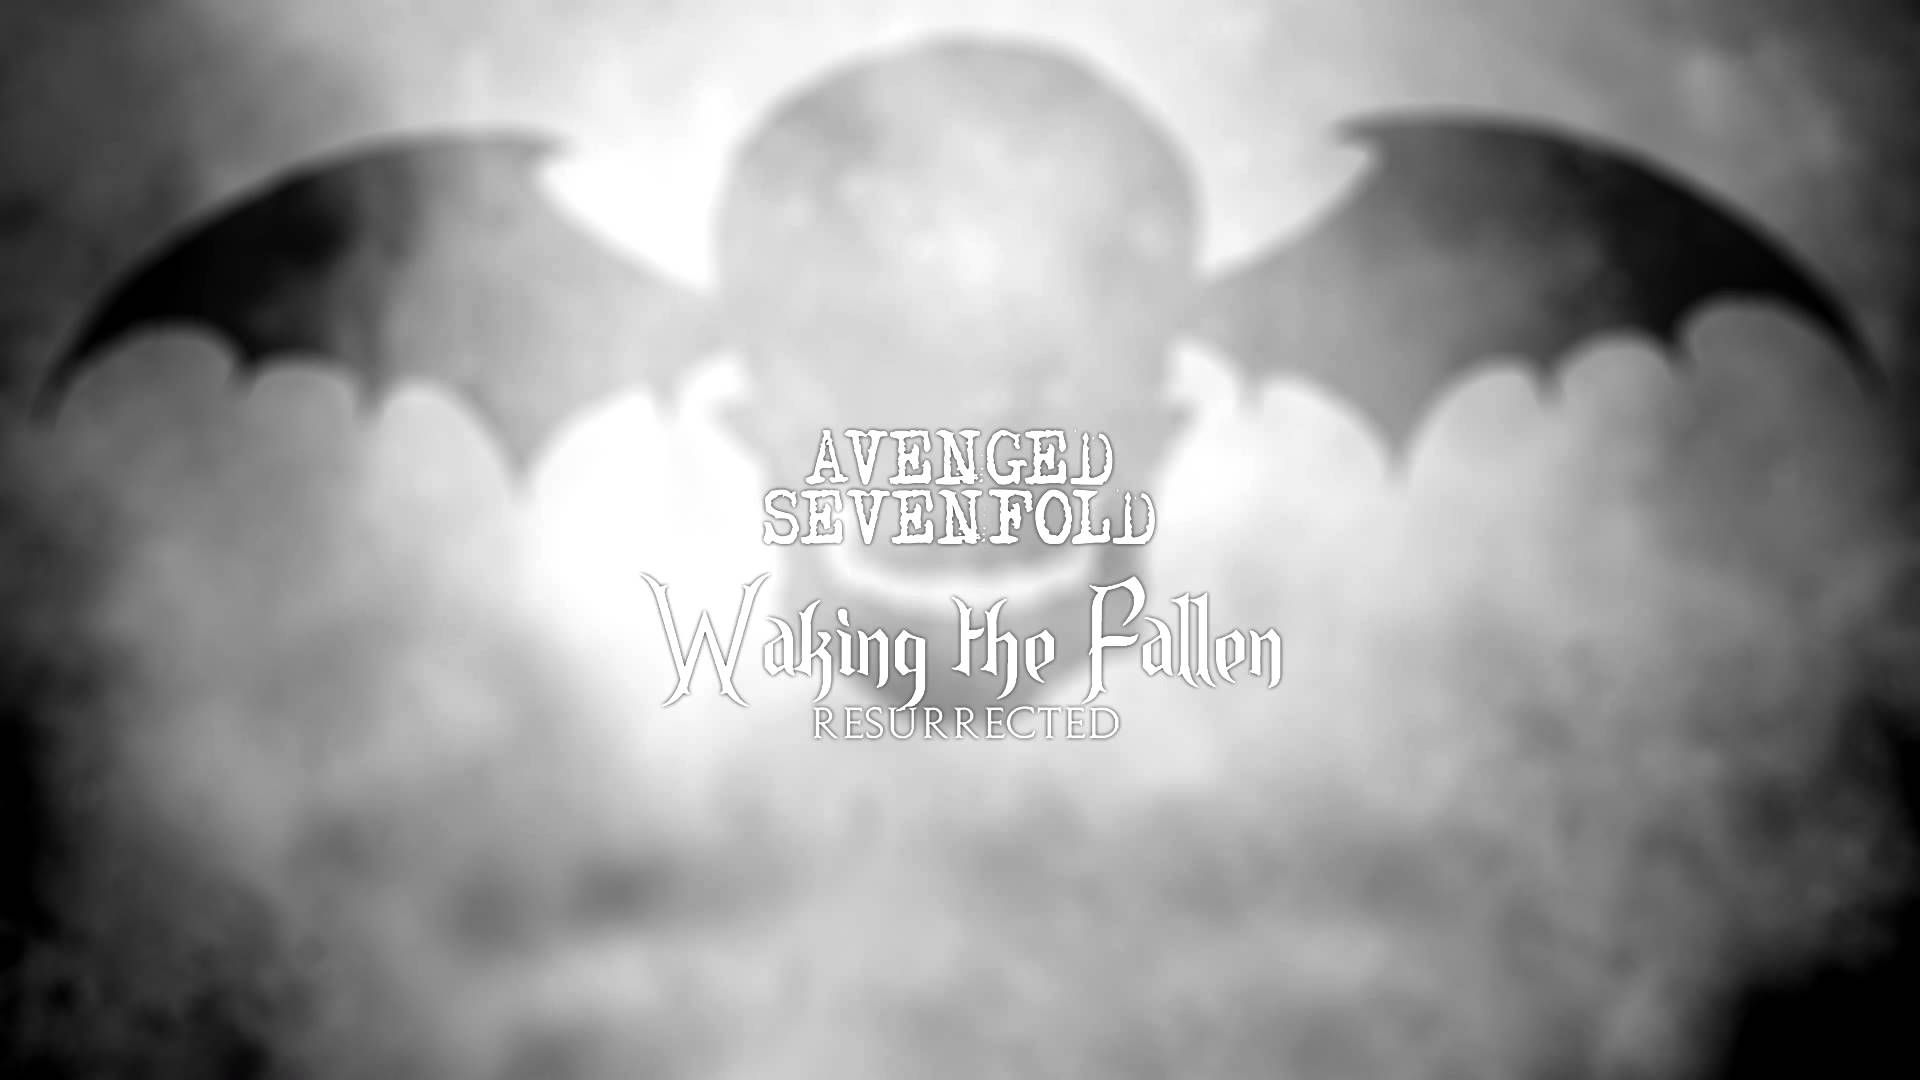 Avenged Sevenfold Waking The Fallen Waking The Fallen Avenged